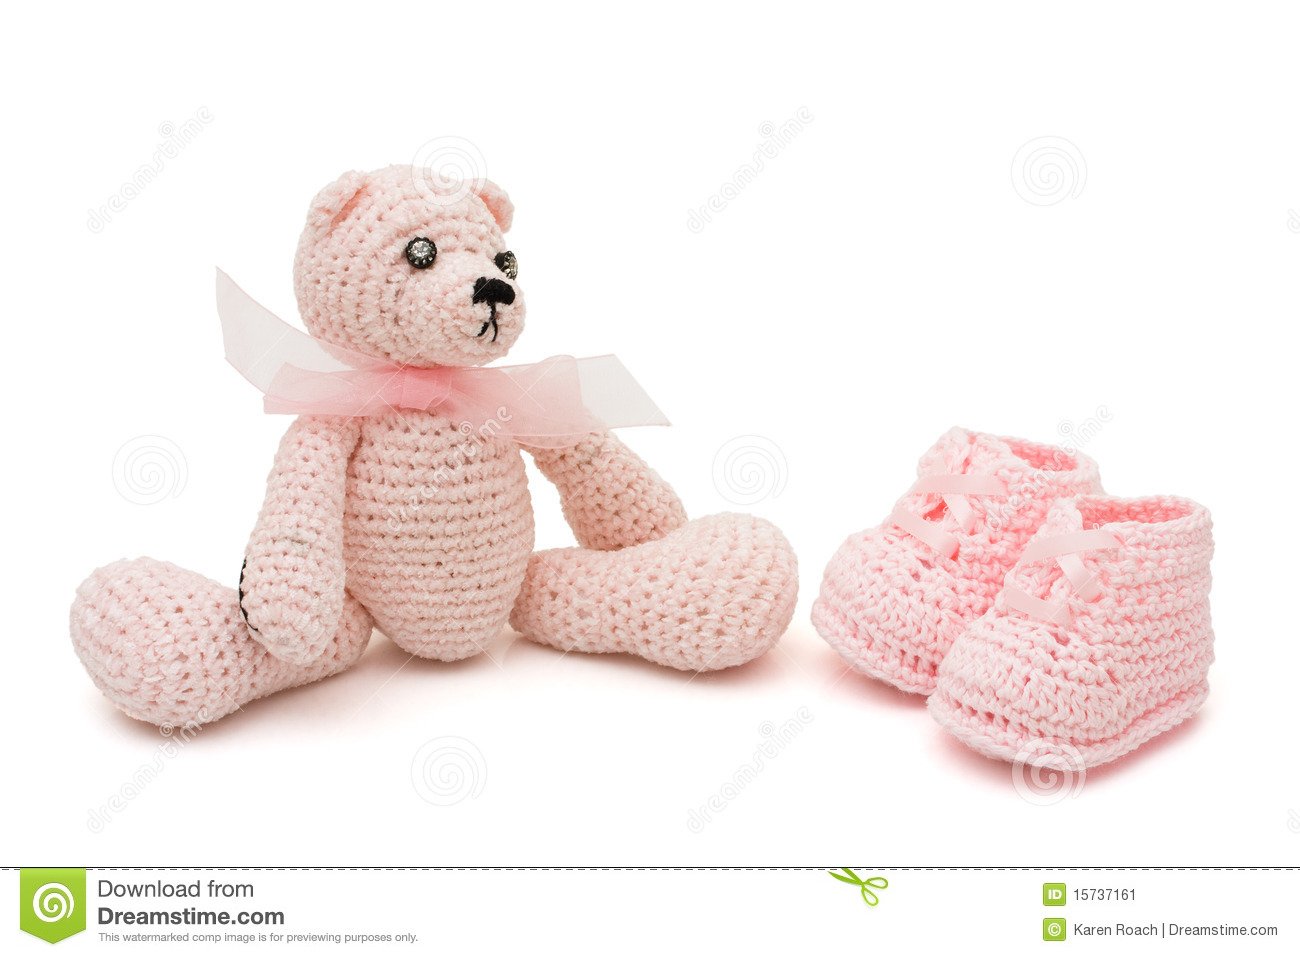 Handmade pink baby booties and teddy bear isolated on a white